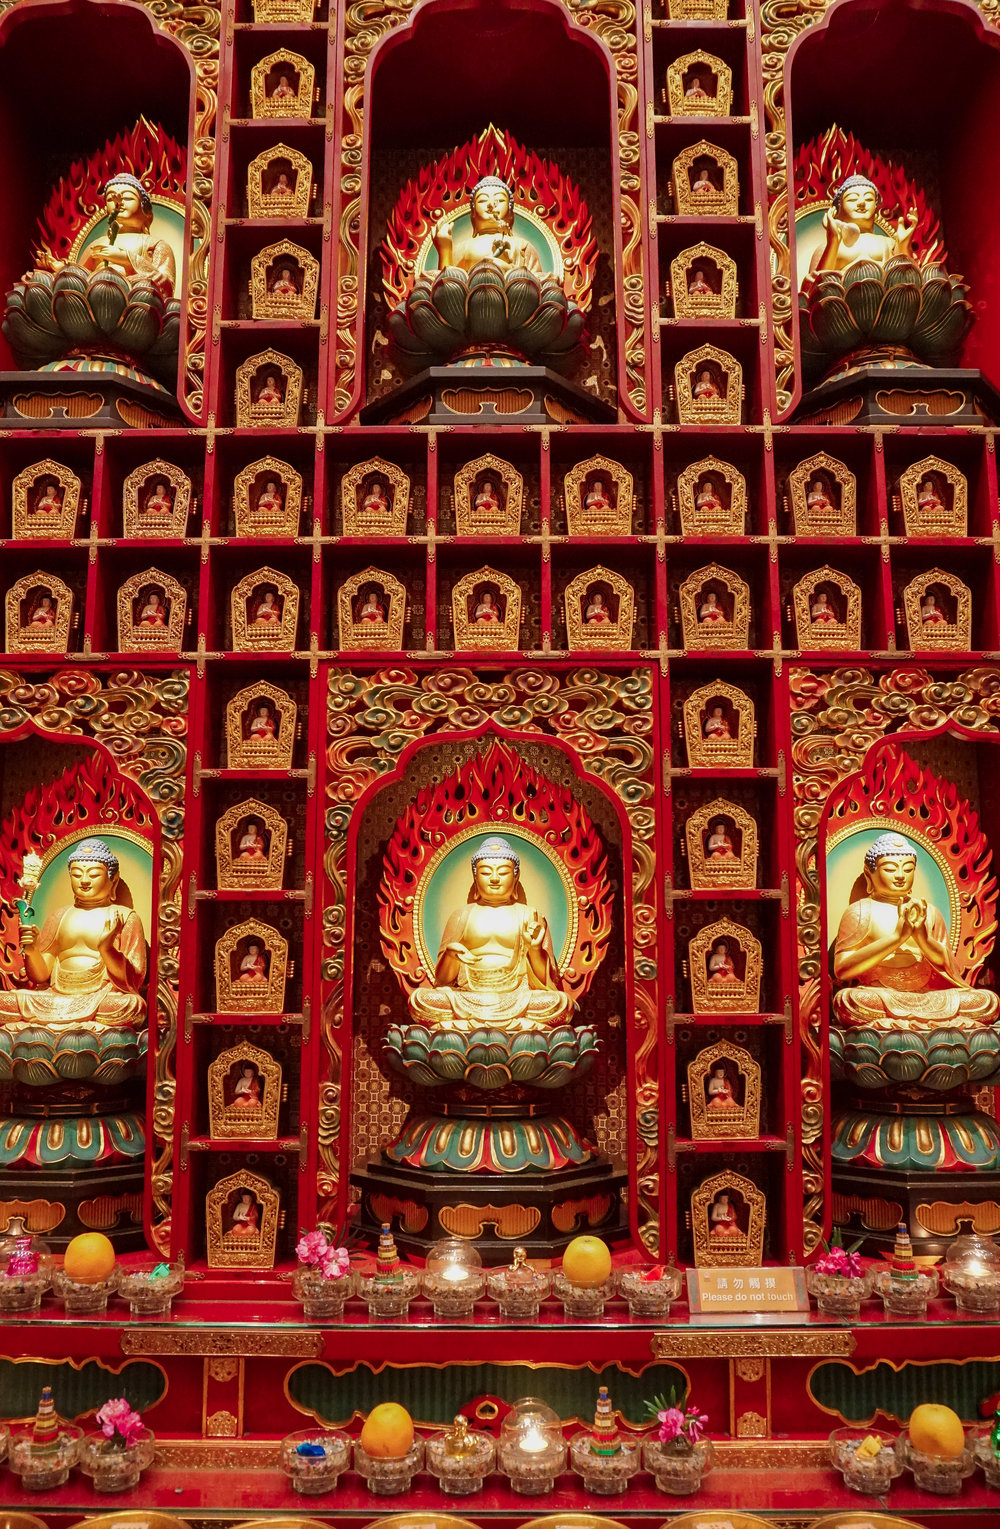 curio.trips.singapore.buddhist.temple.interior.hundred.buddhas.portrait.jpg